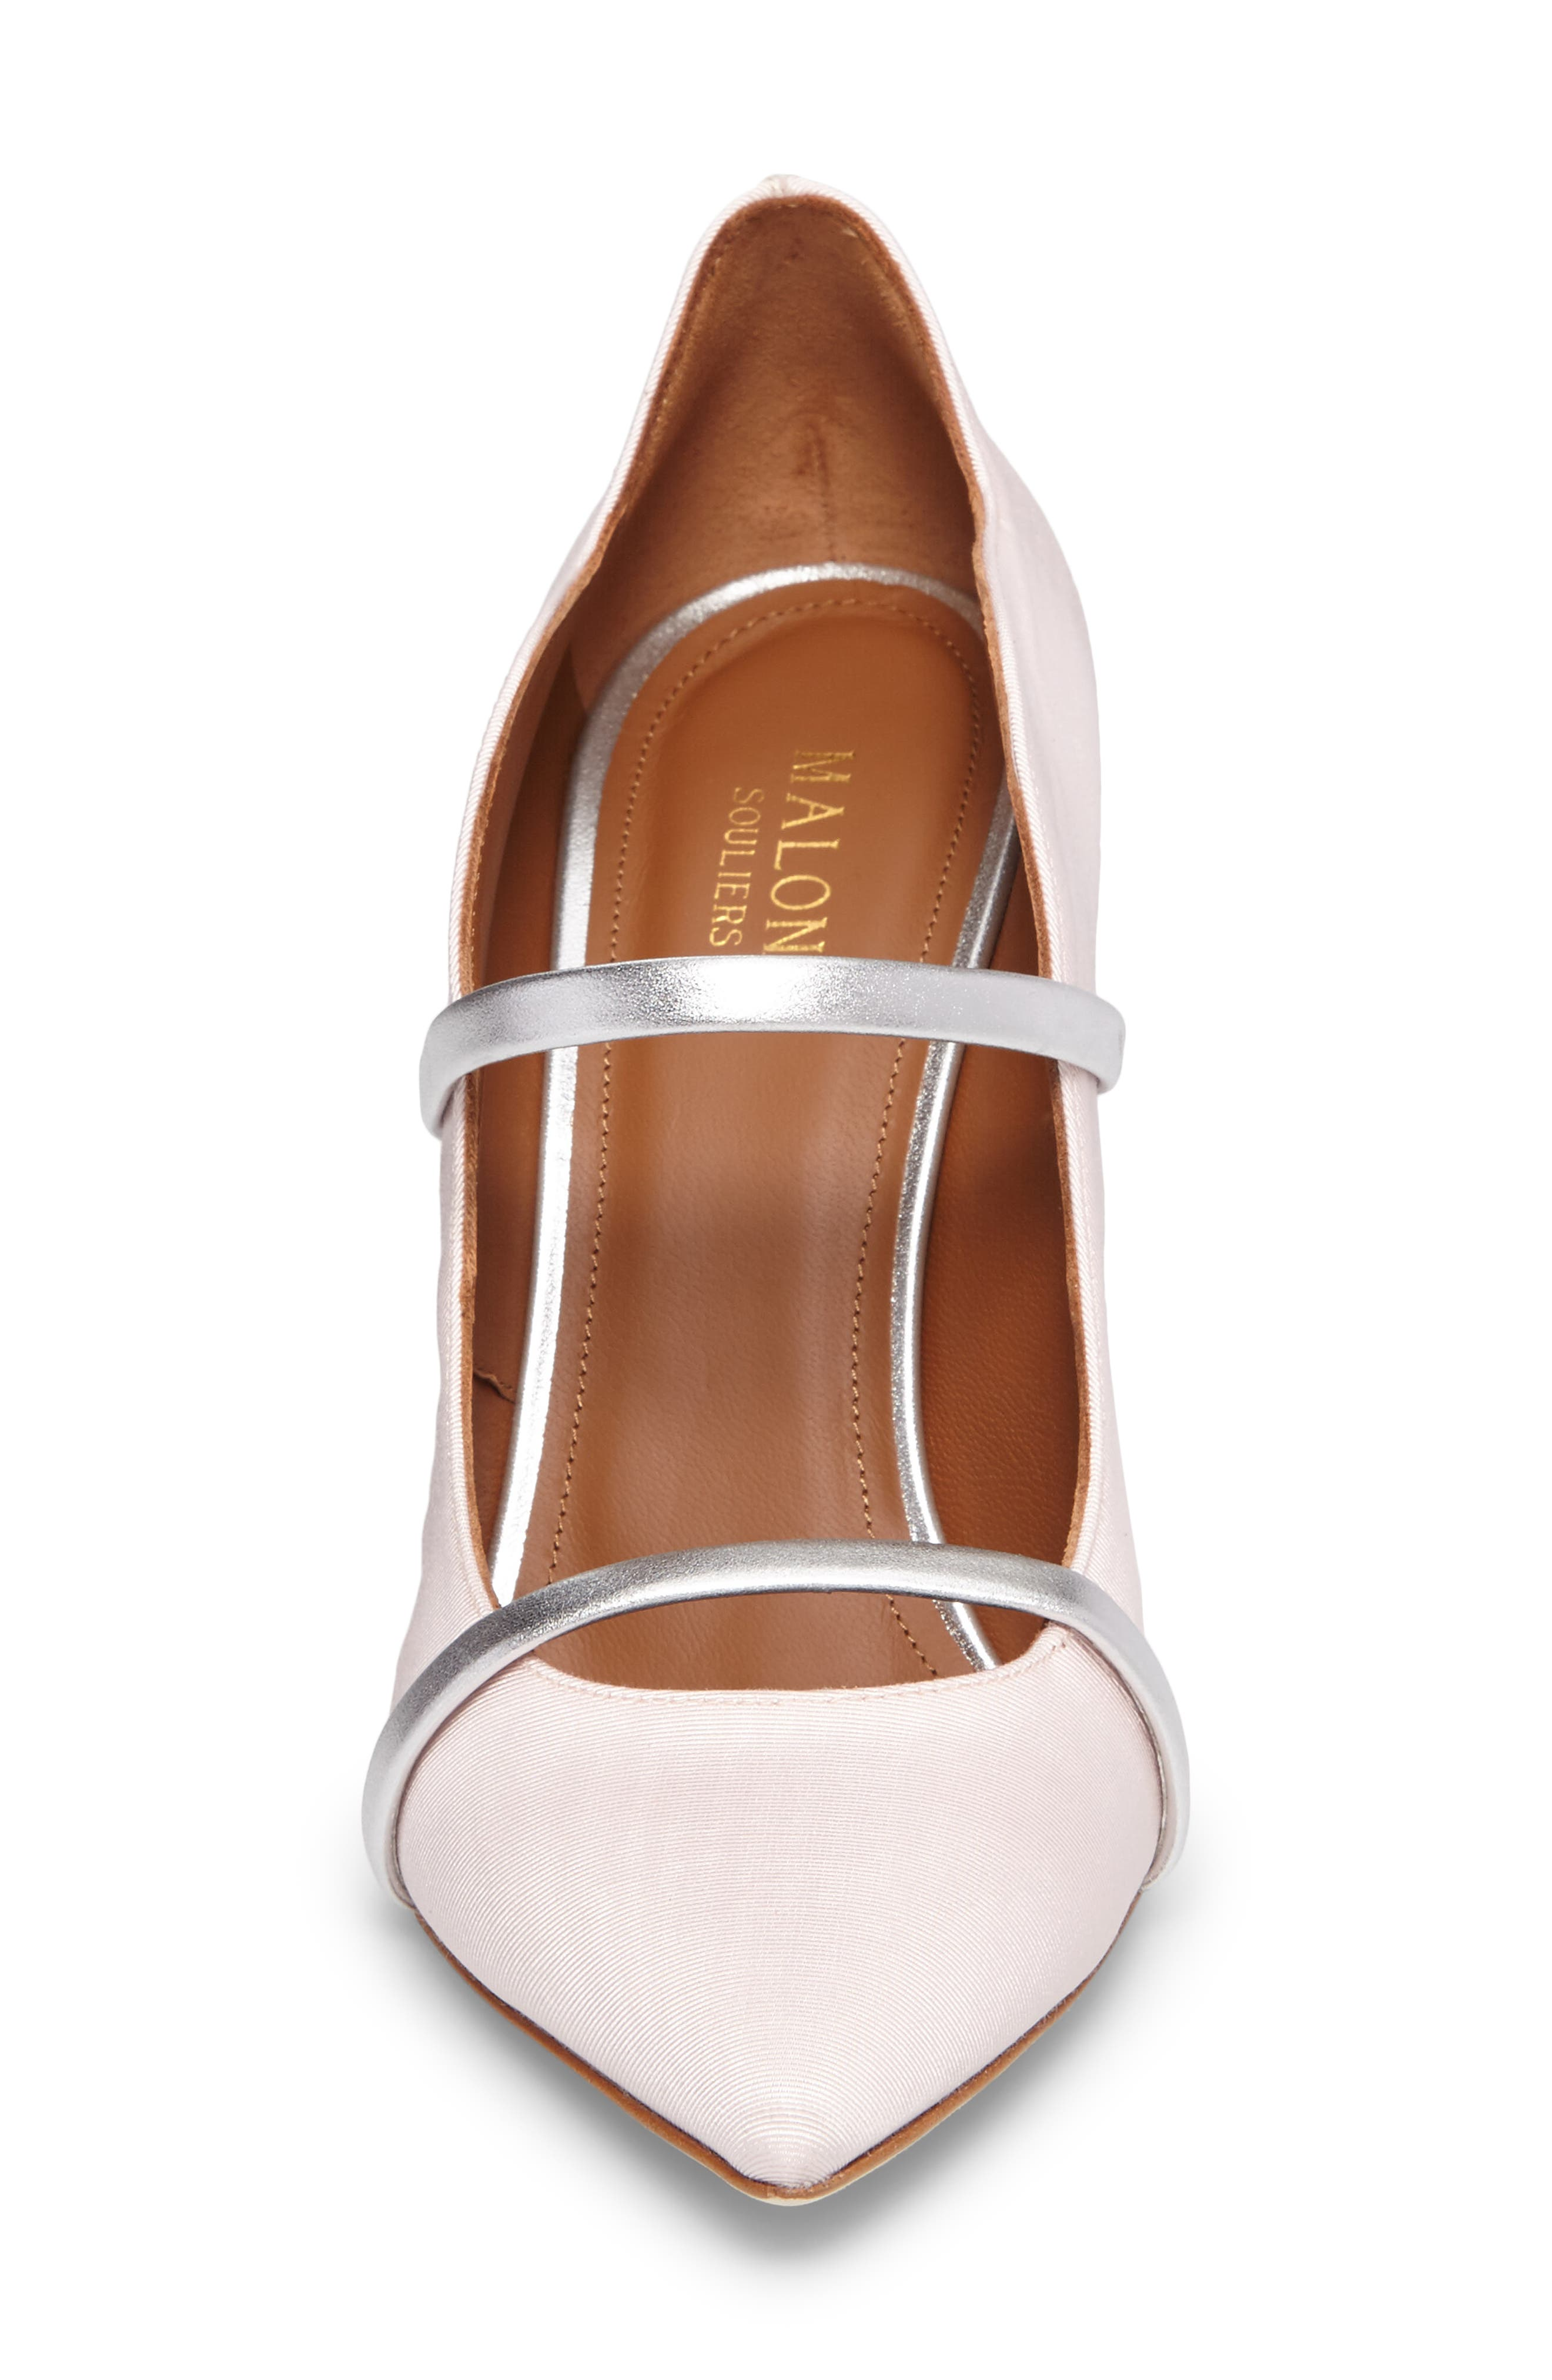 Maureen Double Band Pump,                             Alternate thumbnail 4, color,                             Rose/ Silver